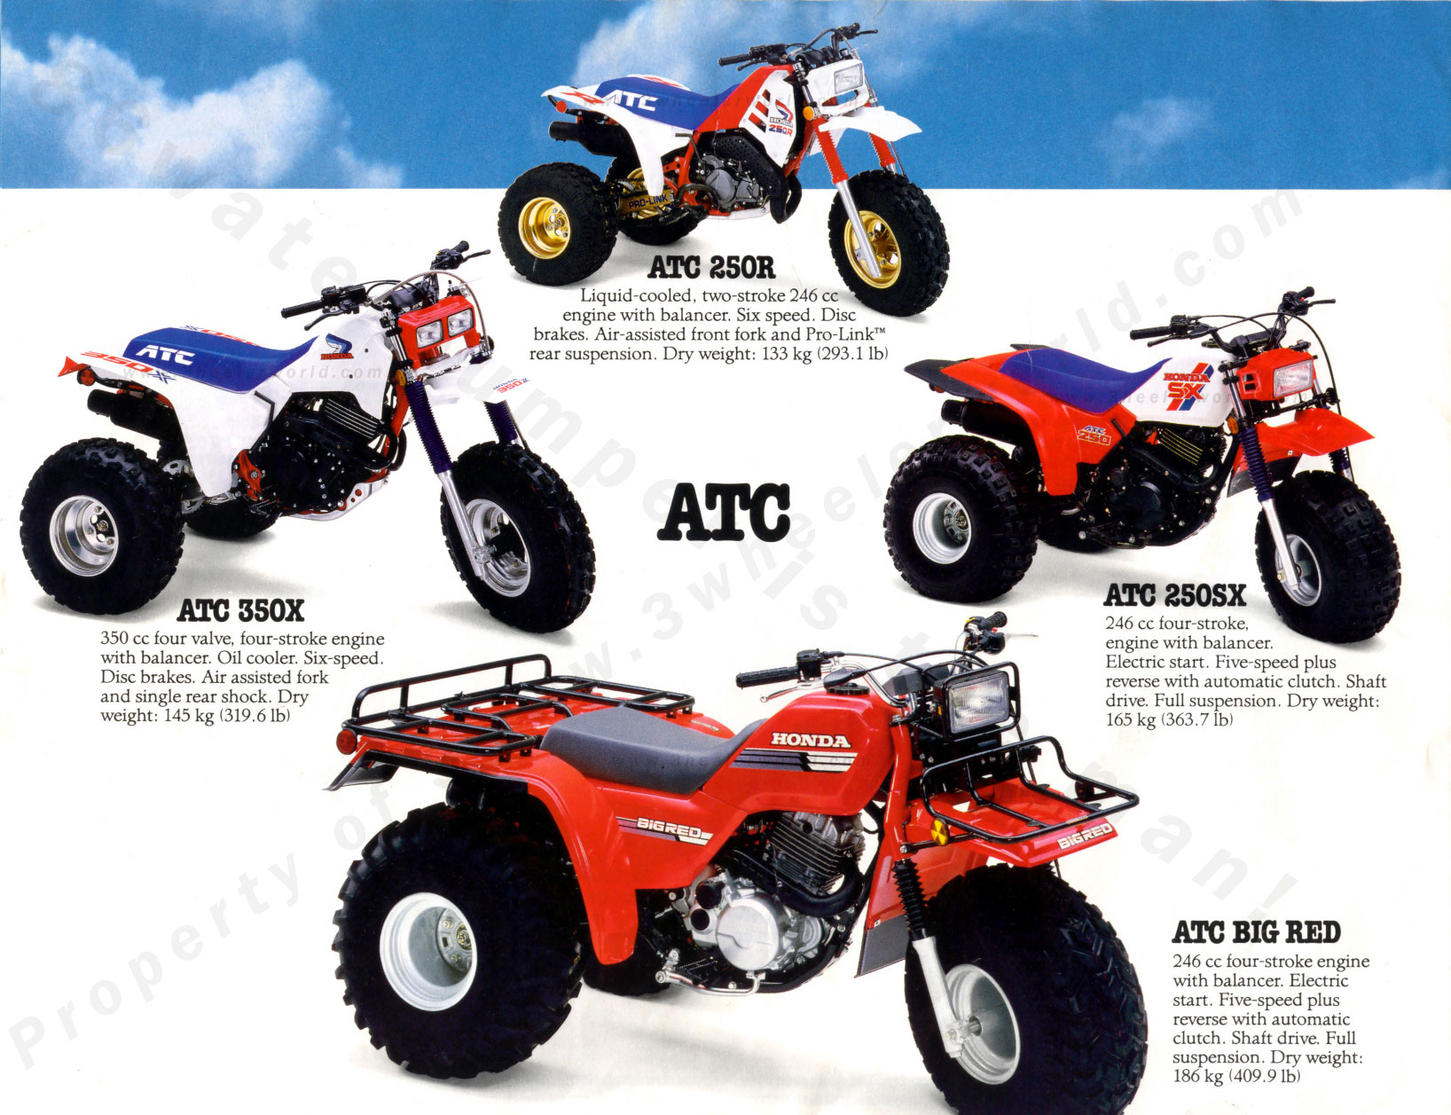 3wheeler world the hunt for the legendary 1987 atcs continues three wheelers have been subject to ignorance and hate for a very long time and after the infamous consent decree in the late 80s three wheeler sciox Image collections